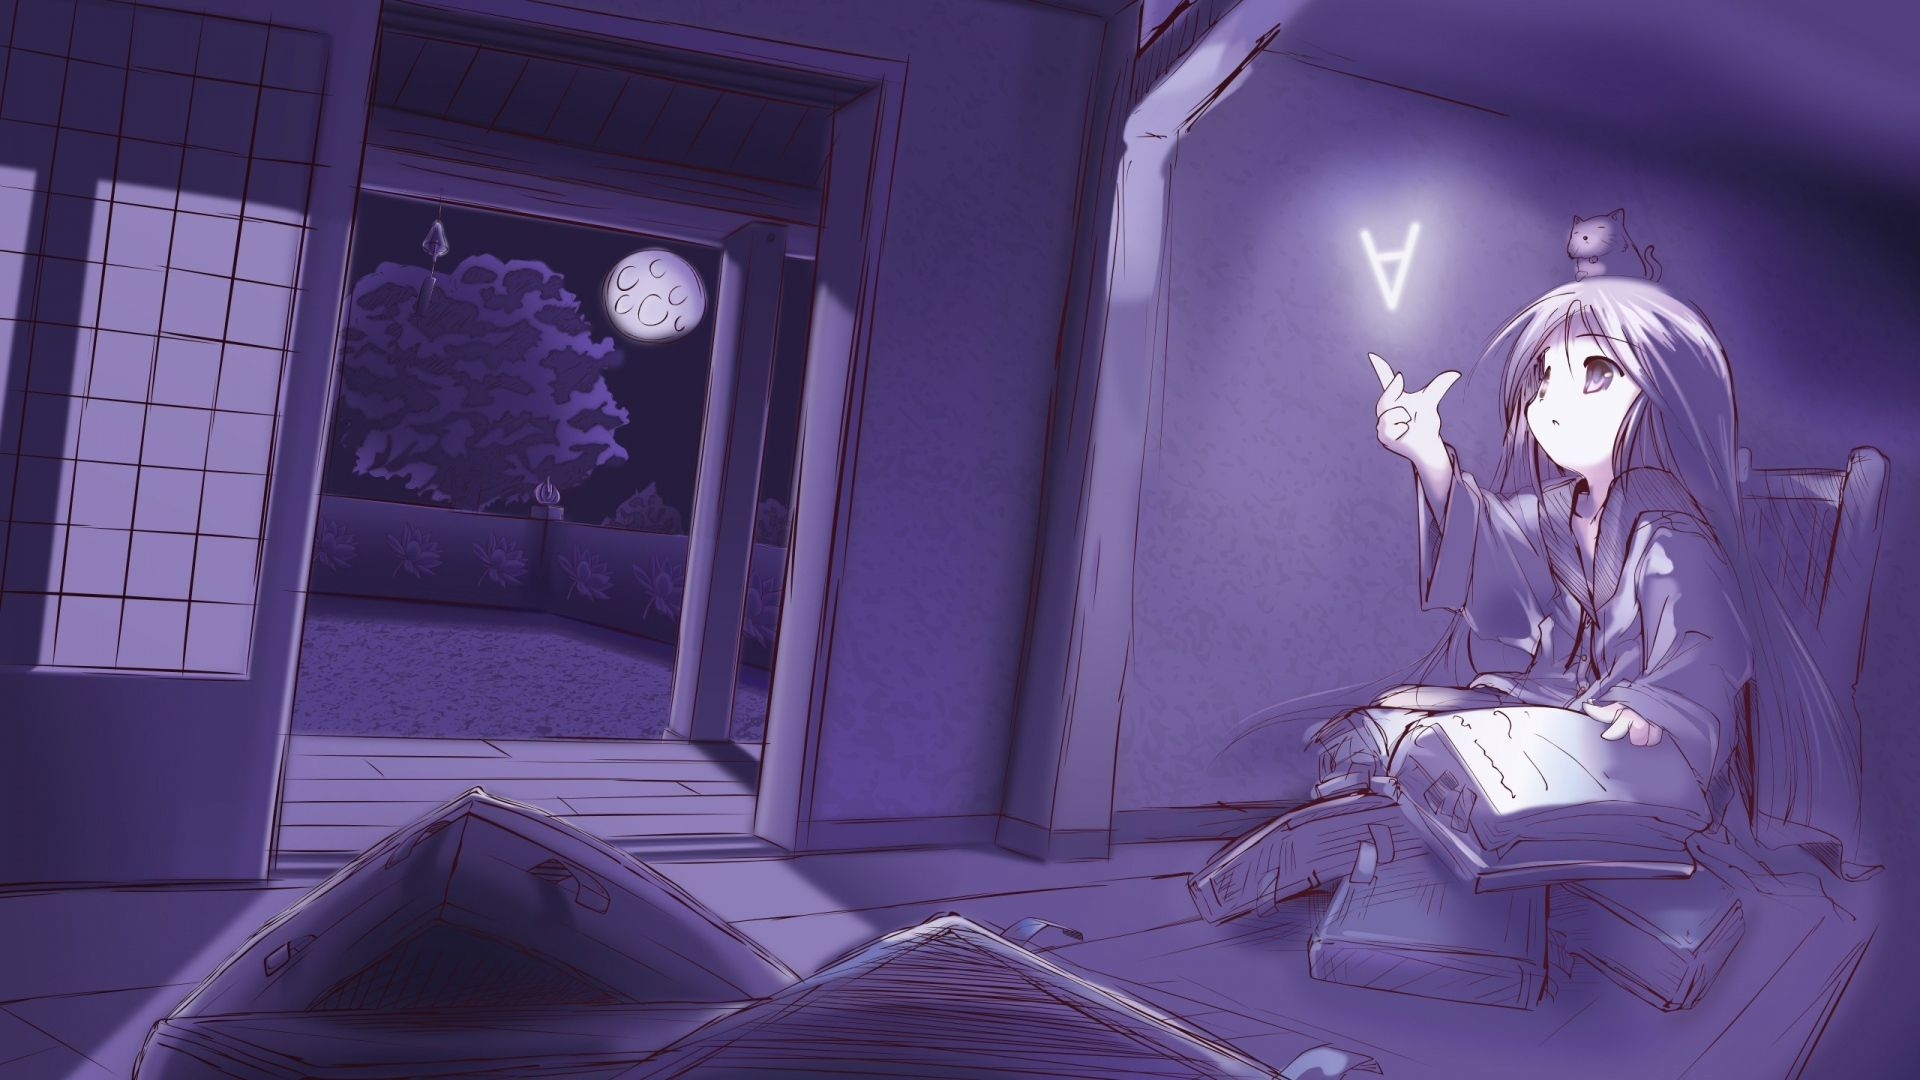 1920x1080 Wallpaper room, book, read, evening | William ...